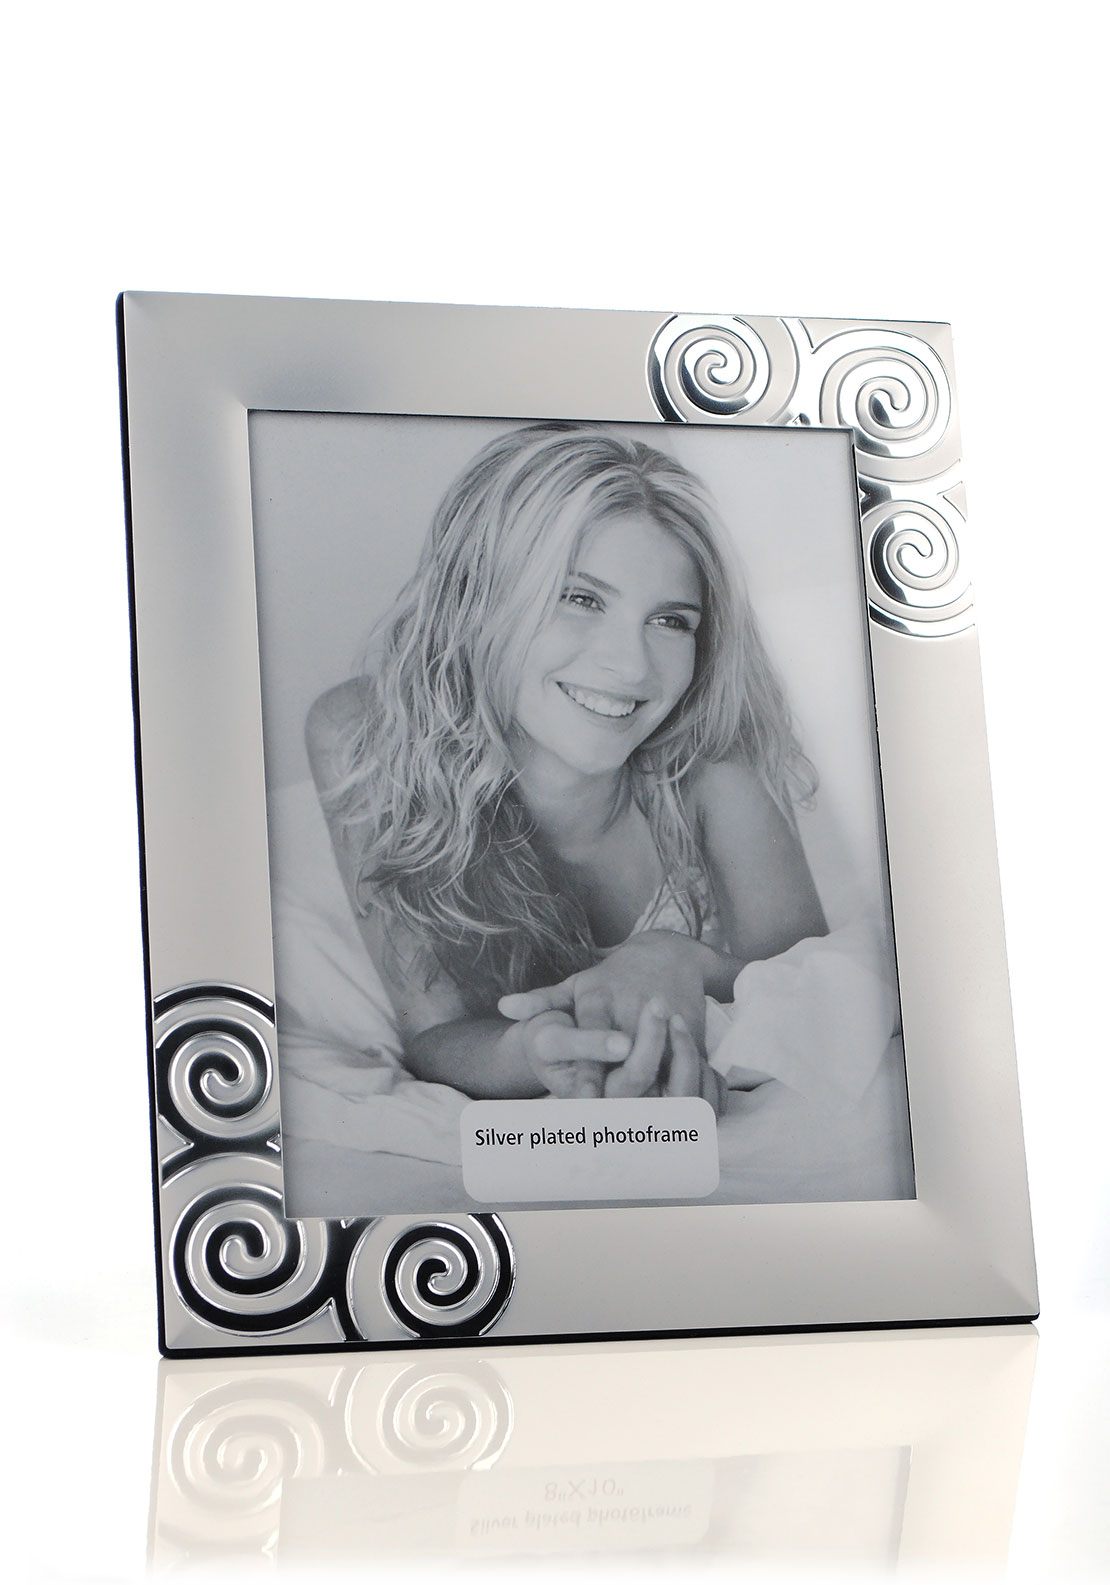 Frame It Silver Plated Photo Frame, 8 x 10 inches